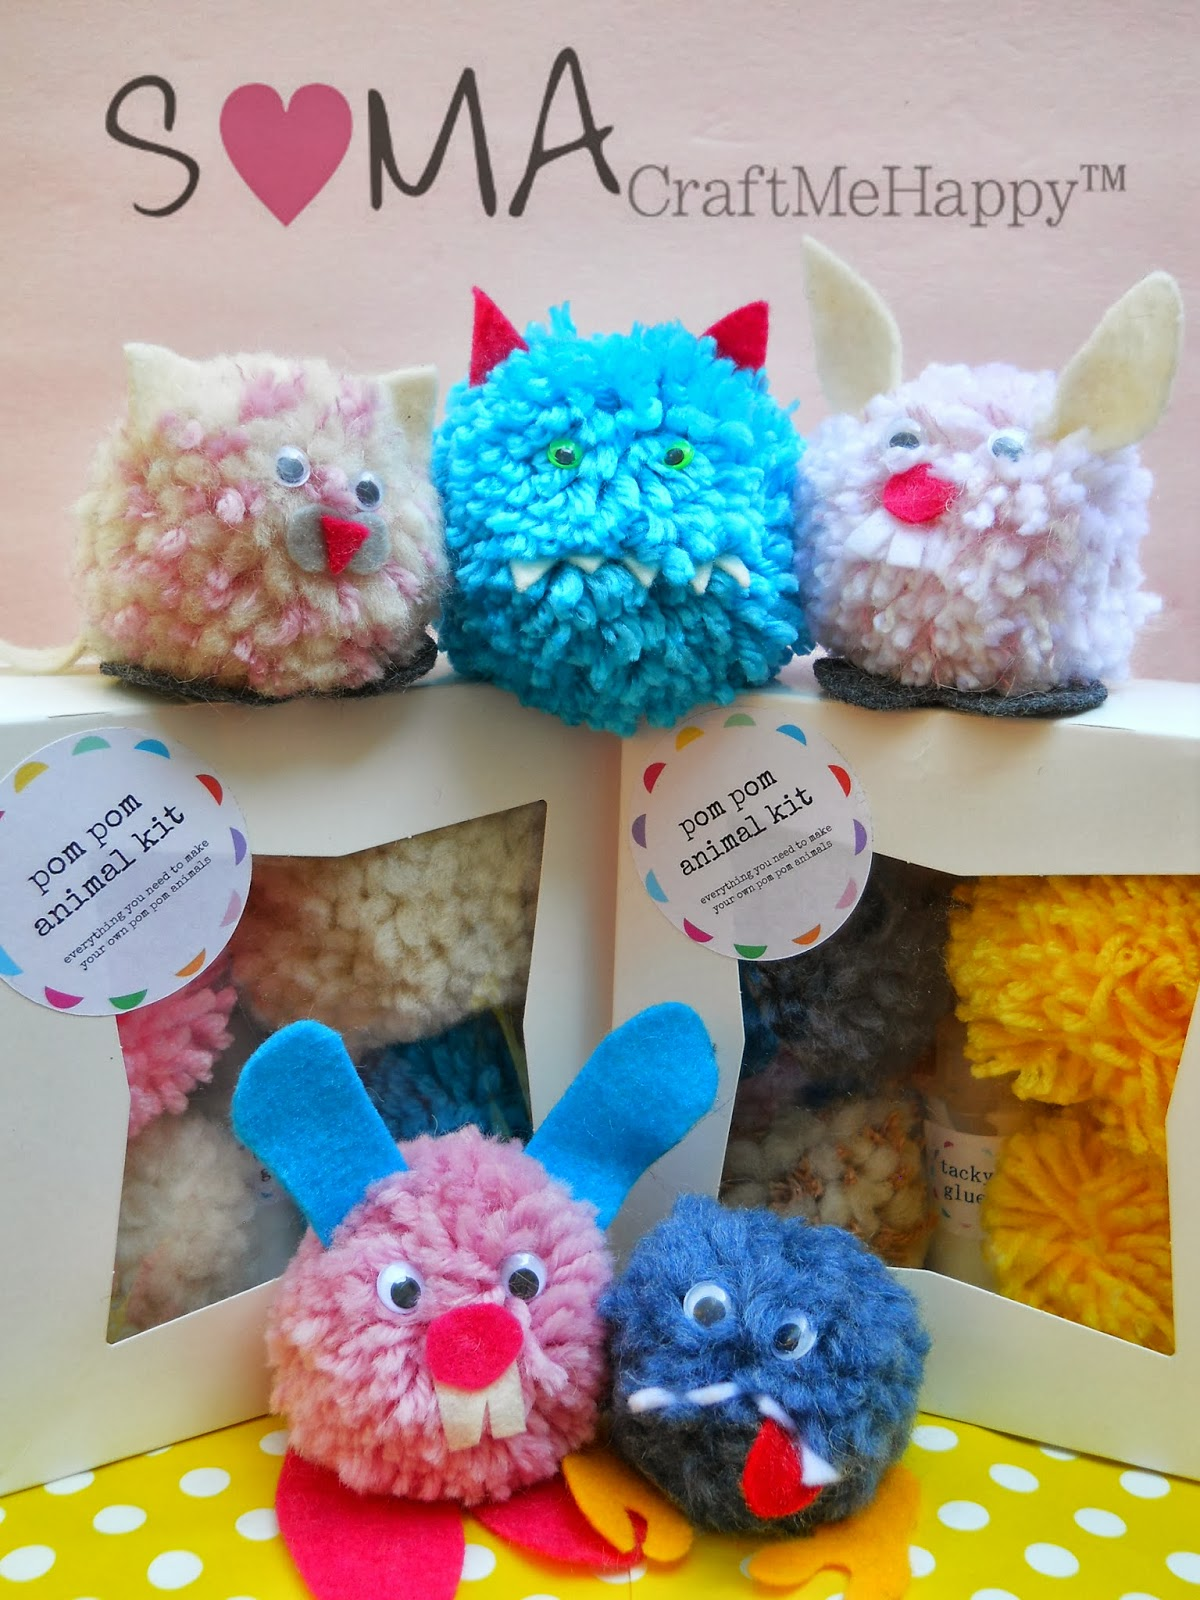 SOMA Craft Me Happy: POM POM ANIMALS AND MONSTERS Happy Easter